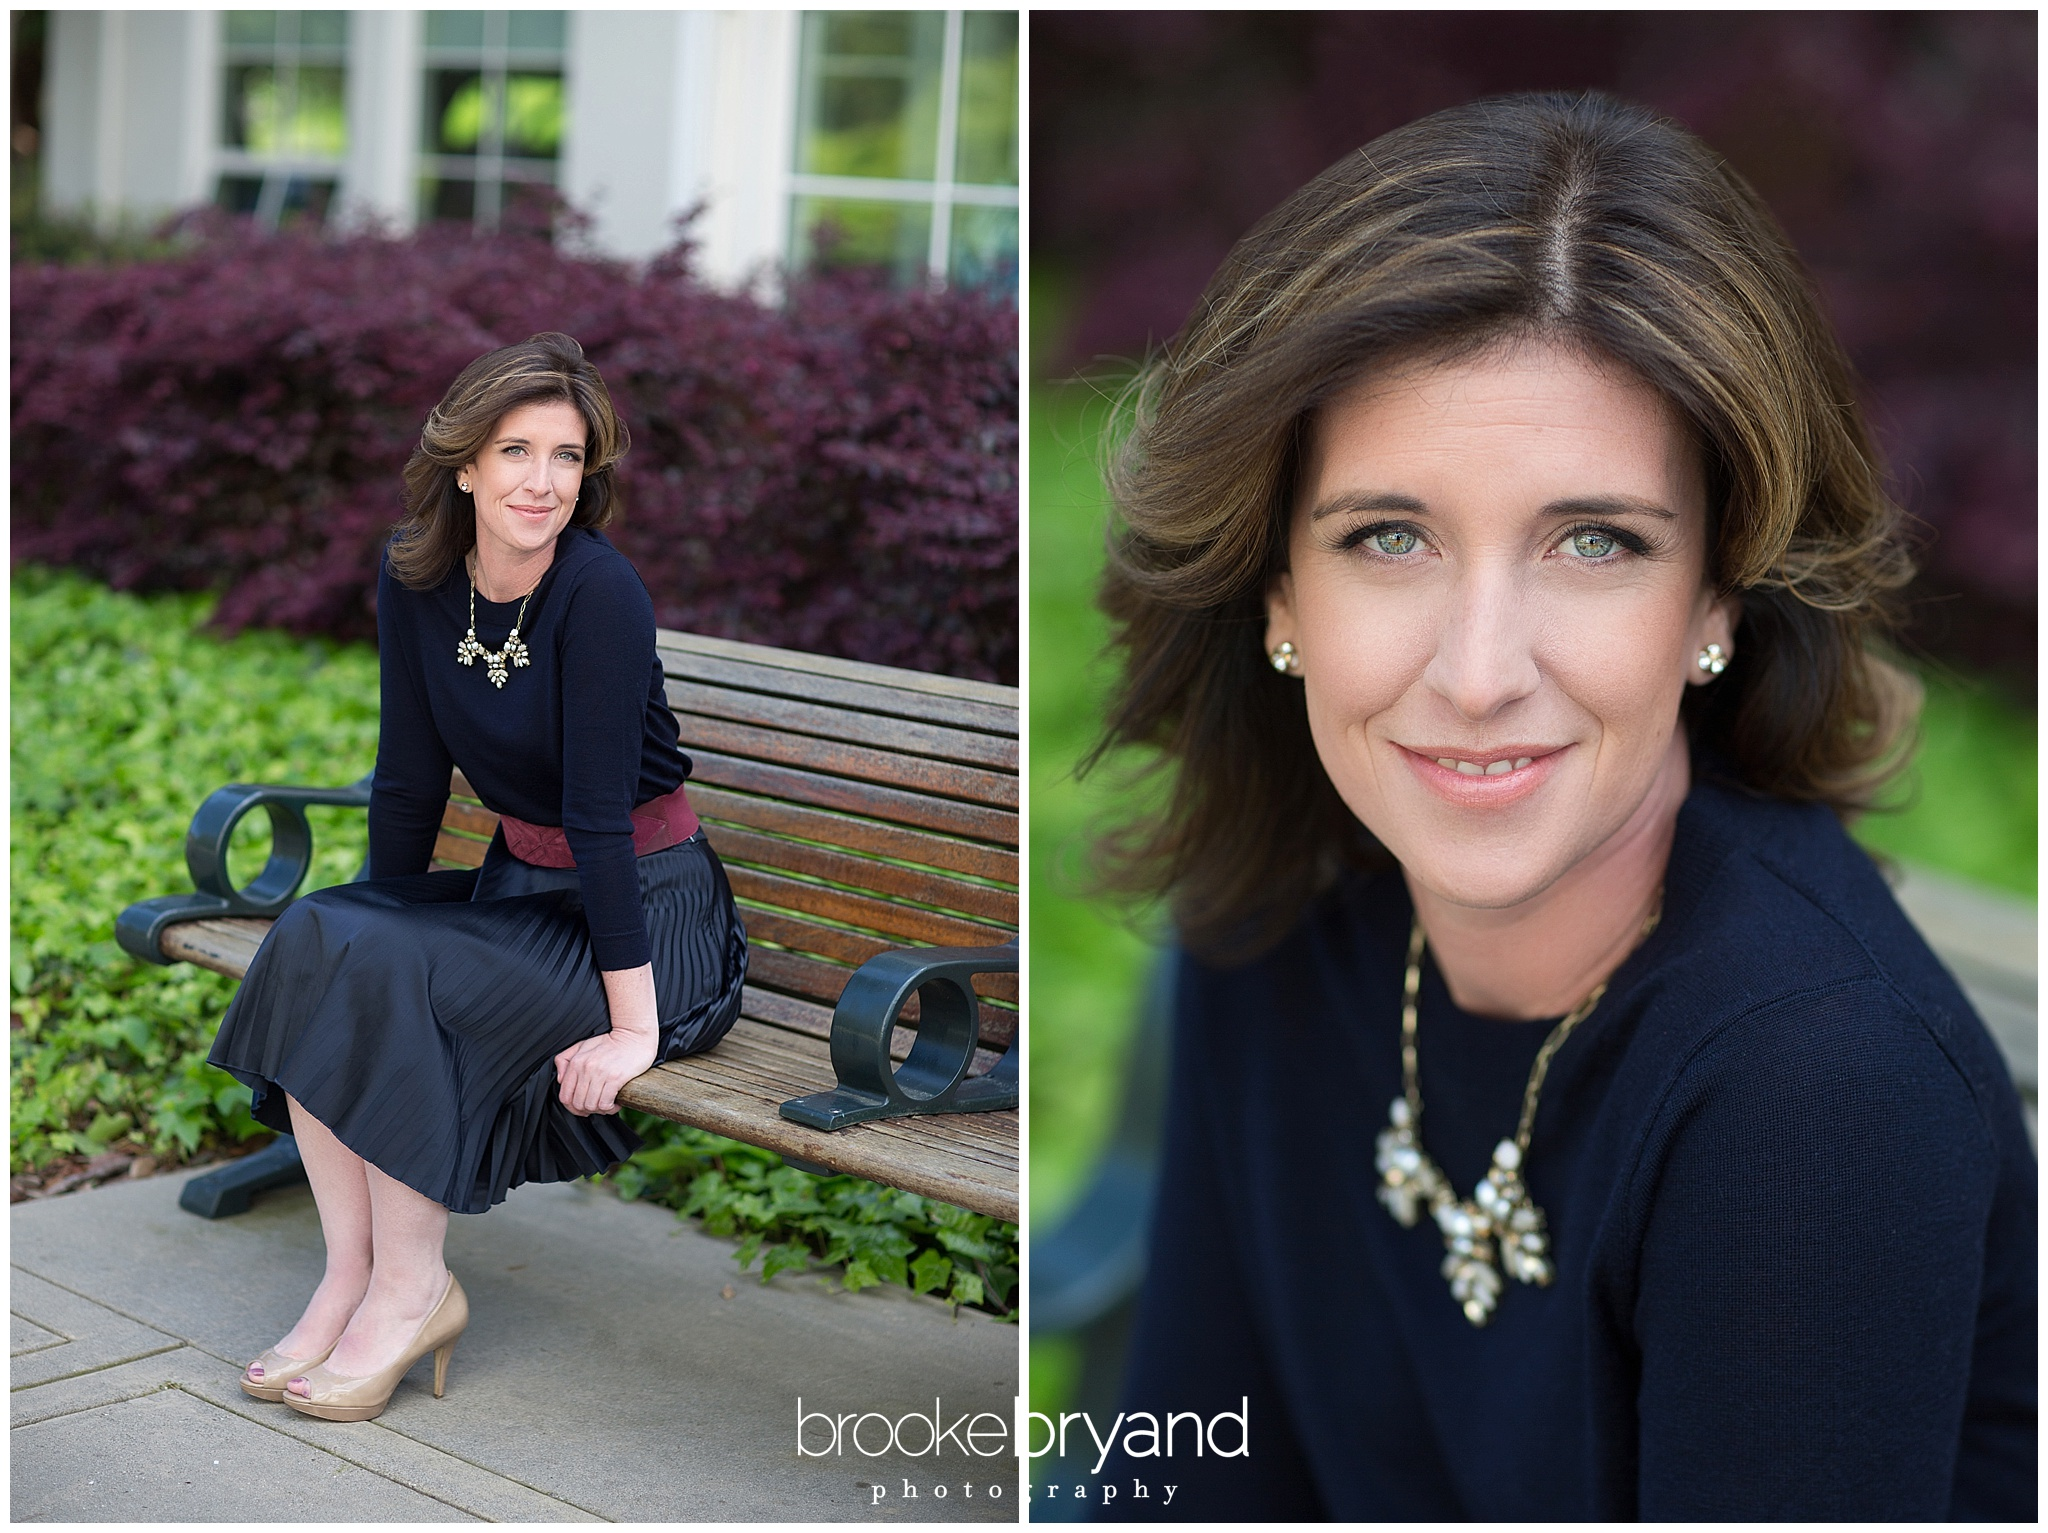 04.2016-Brooke-Bryand-Photography-Raleigh-Headshot-Photographer-BBP_5732_r1.jpg